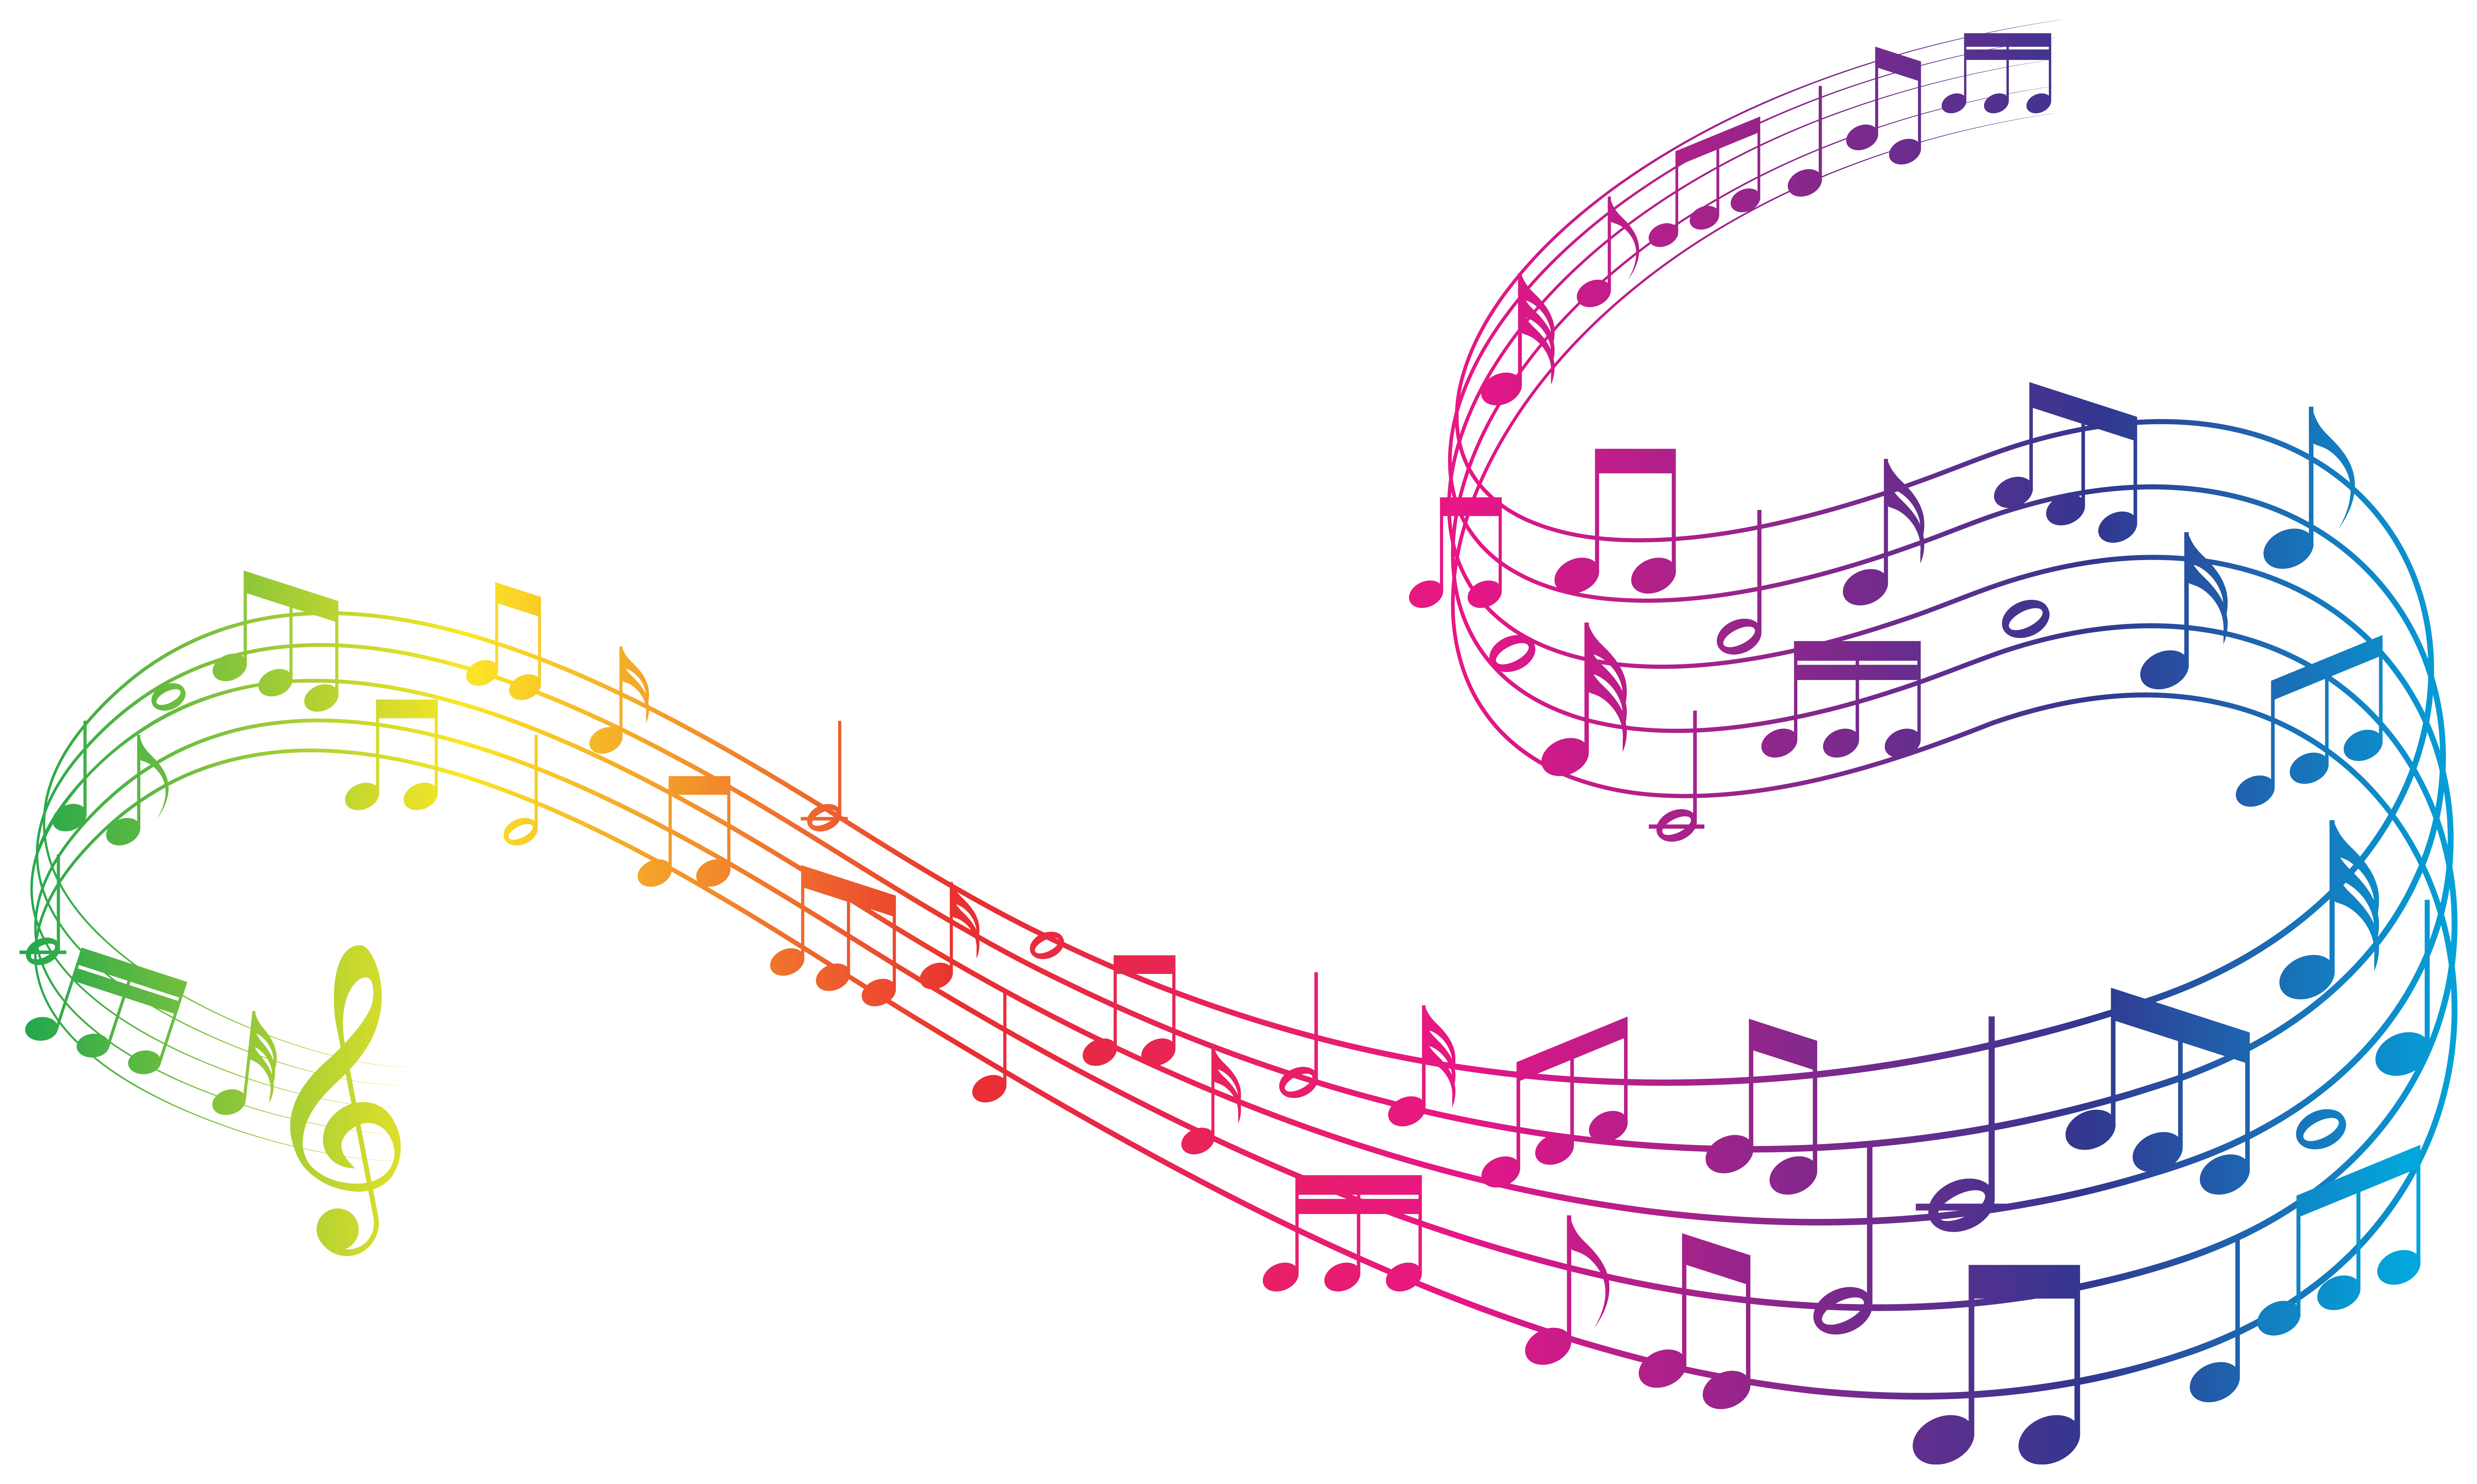 Music notes clipart colorful png transparent library Colorful Music Notes Clipart Image | Gallery Yopriceville - High ... png transparent library